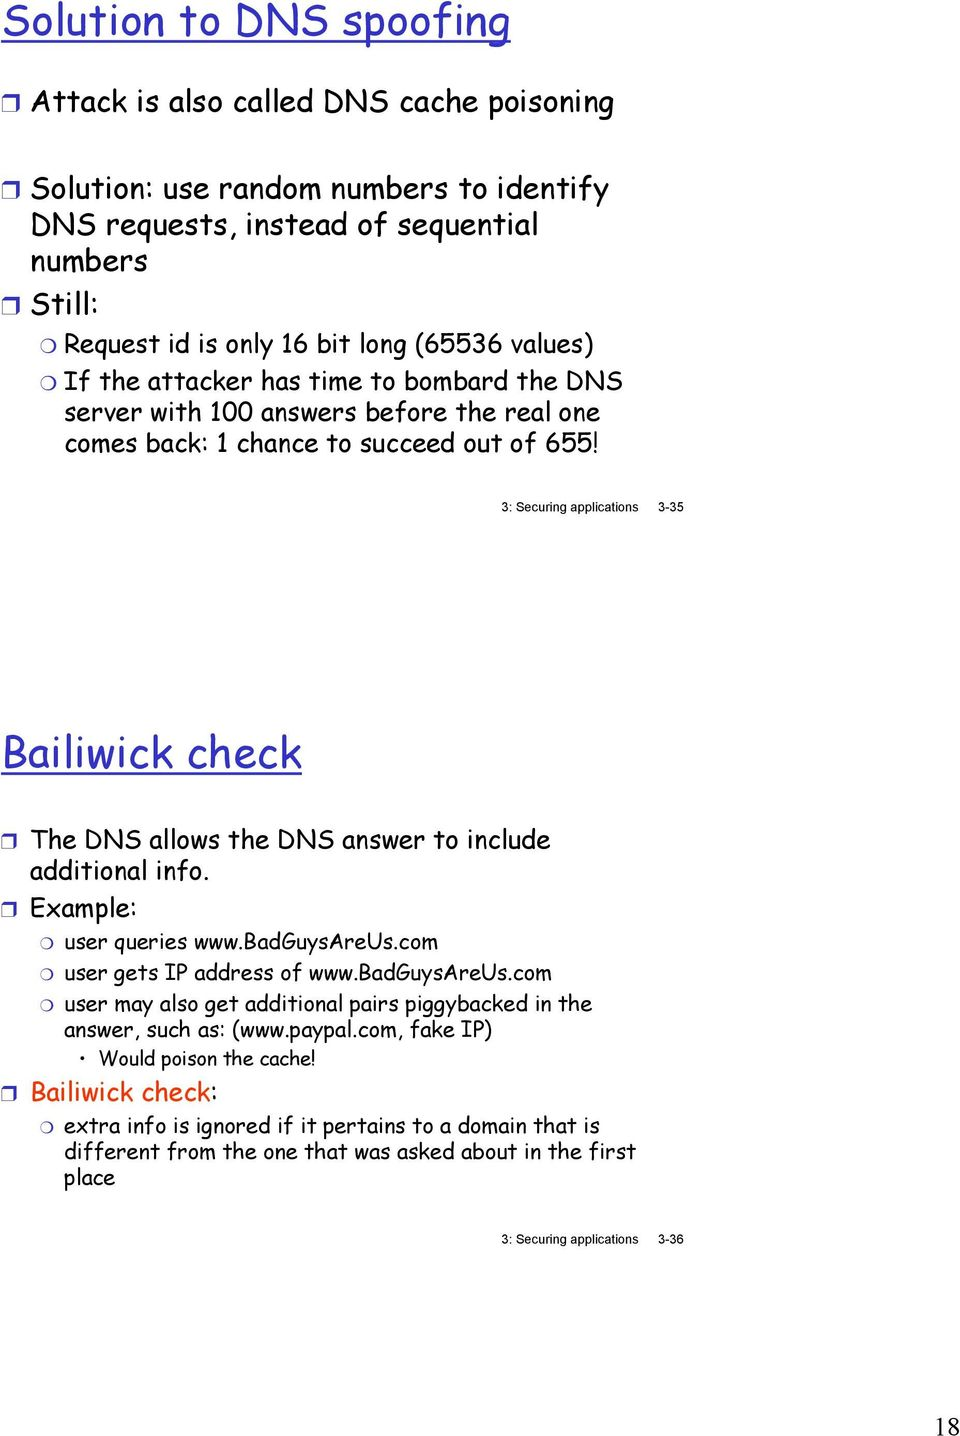 3: Securing applications 3-35 Bailiwick check The DNS allows the DNS answer to include additional info. Example: user queries www.badguysareus.